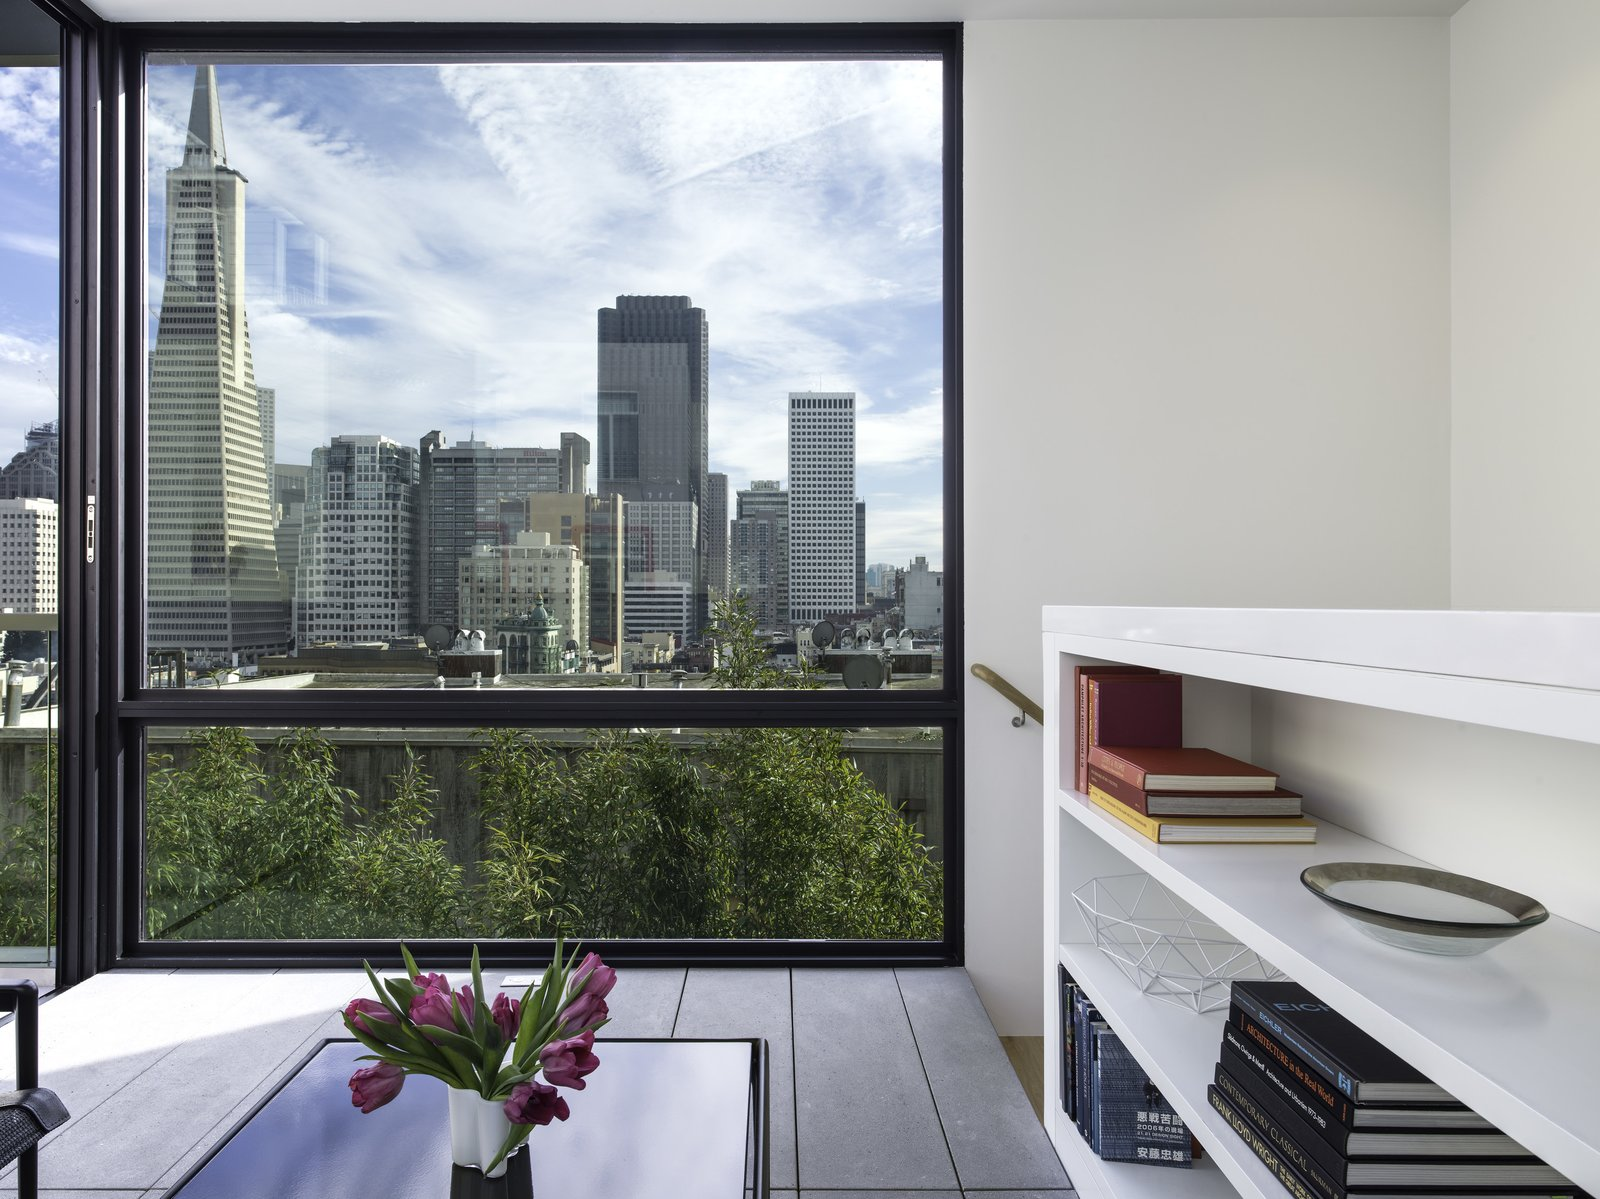 View of the San Francisco skyline from the Sun Room. The bookcase also acts as a guardrail for the stairway.